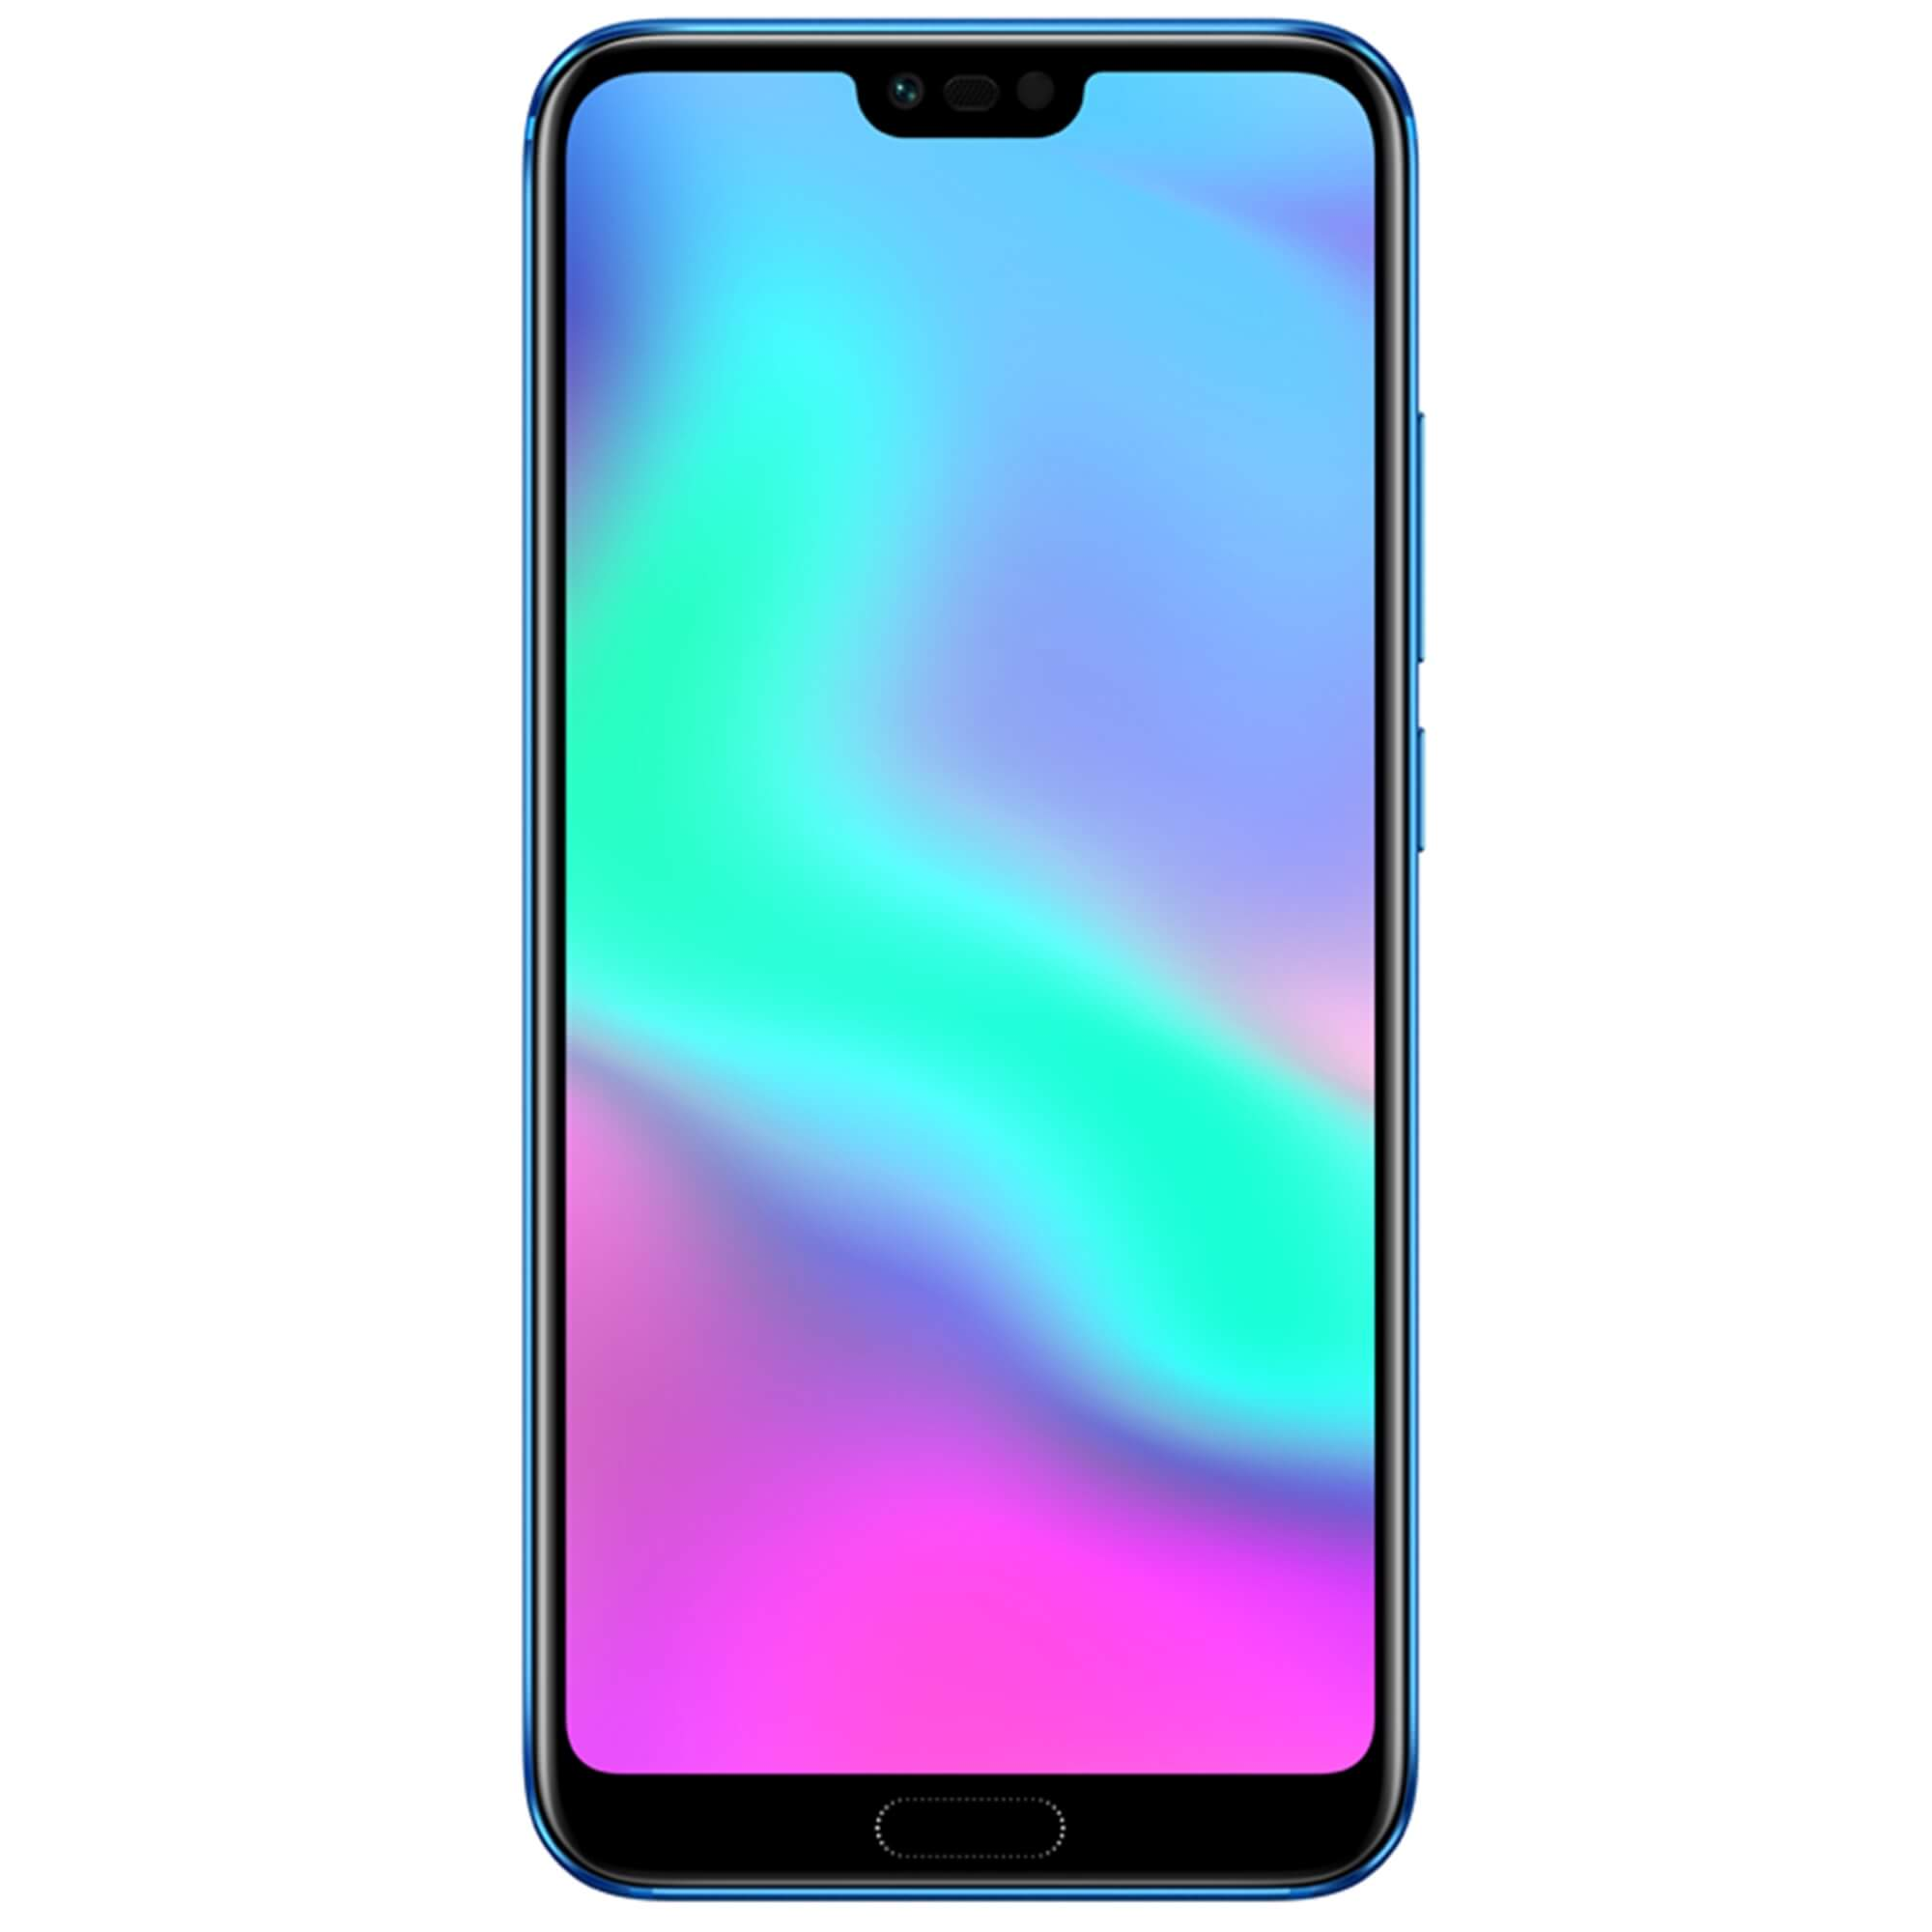 Huawei Honor 10 Dual SIM, 128GB + 4GB RAM, Phantom Blue